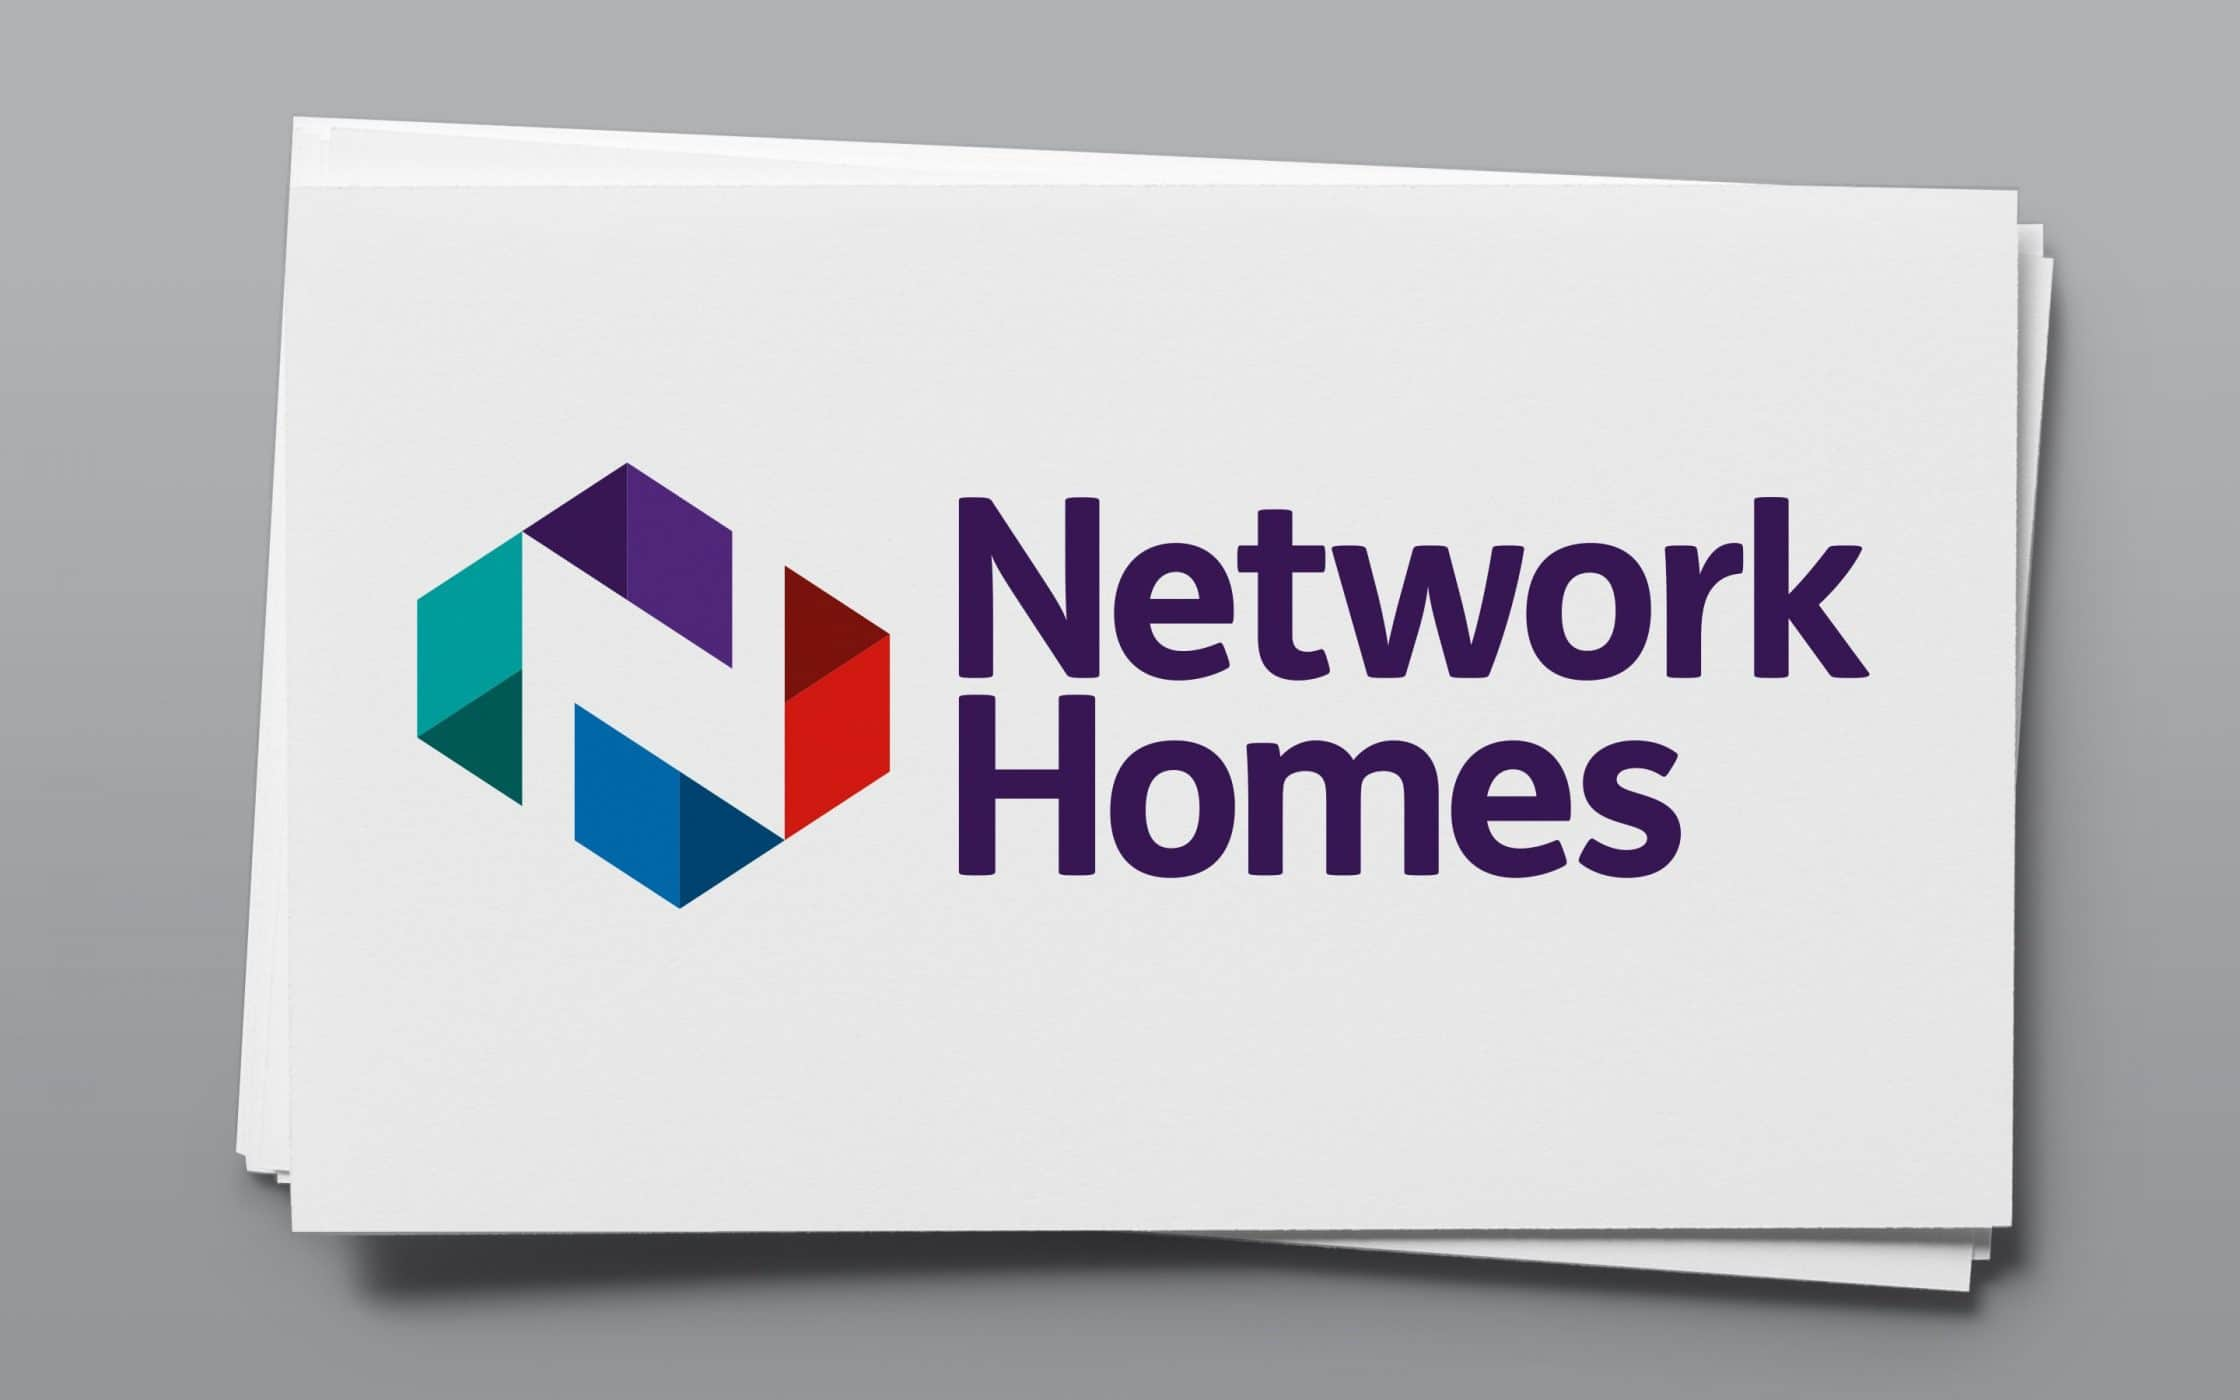 Network Homes branding on cards.